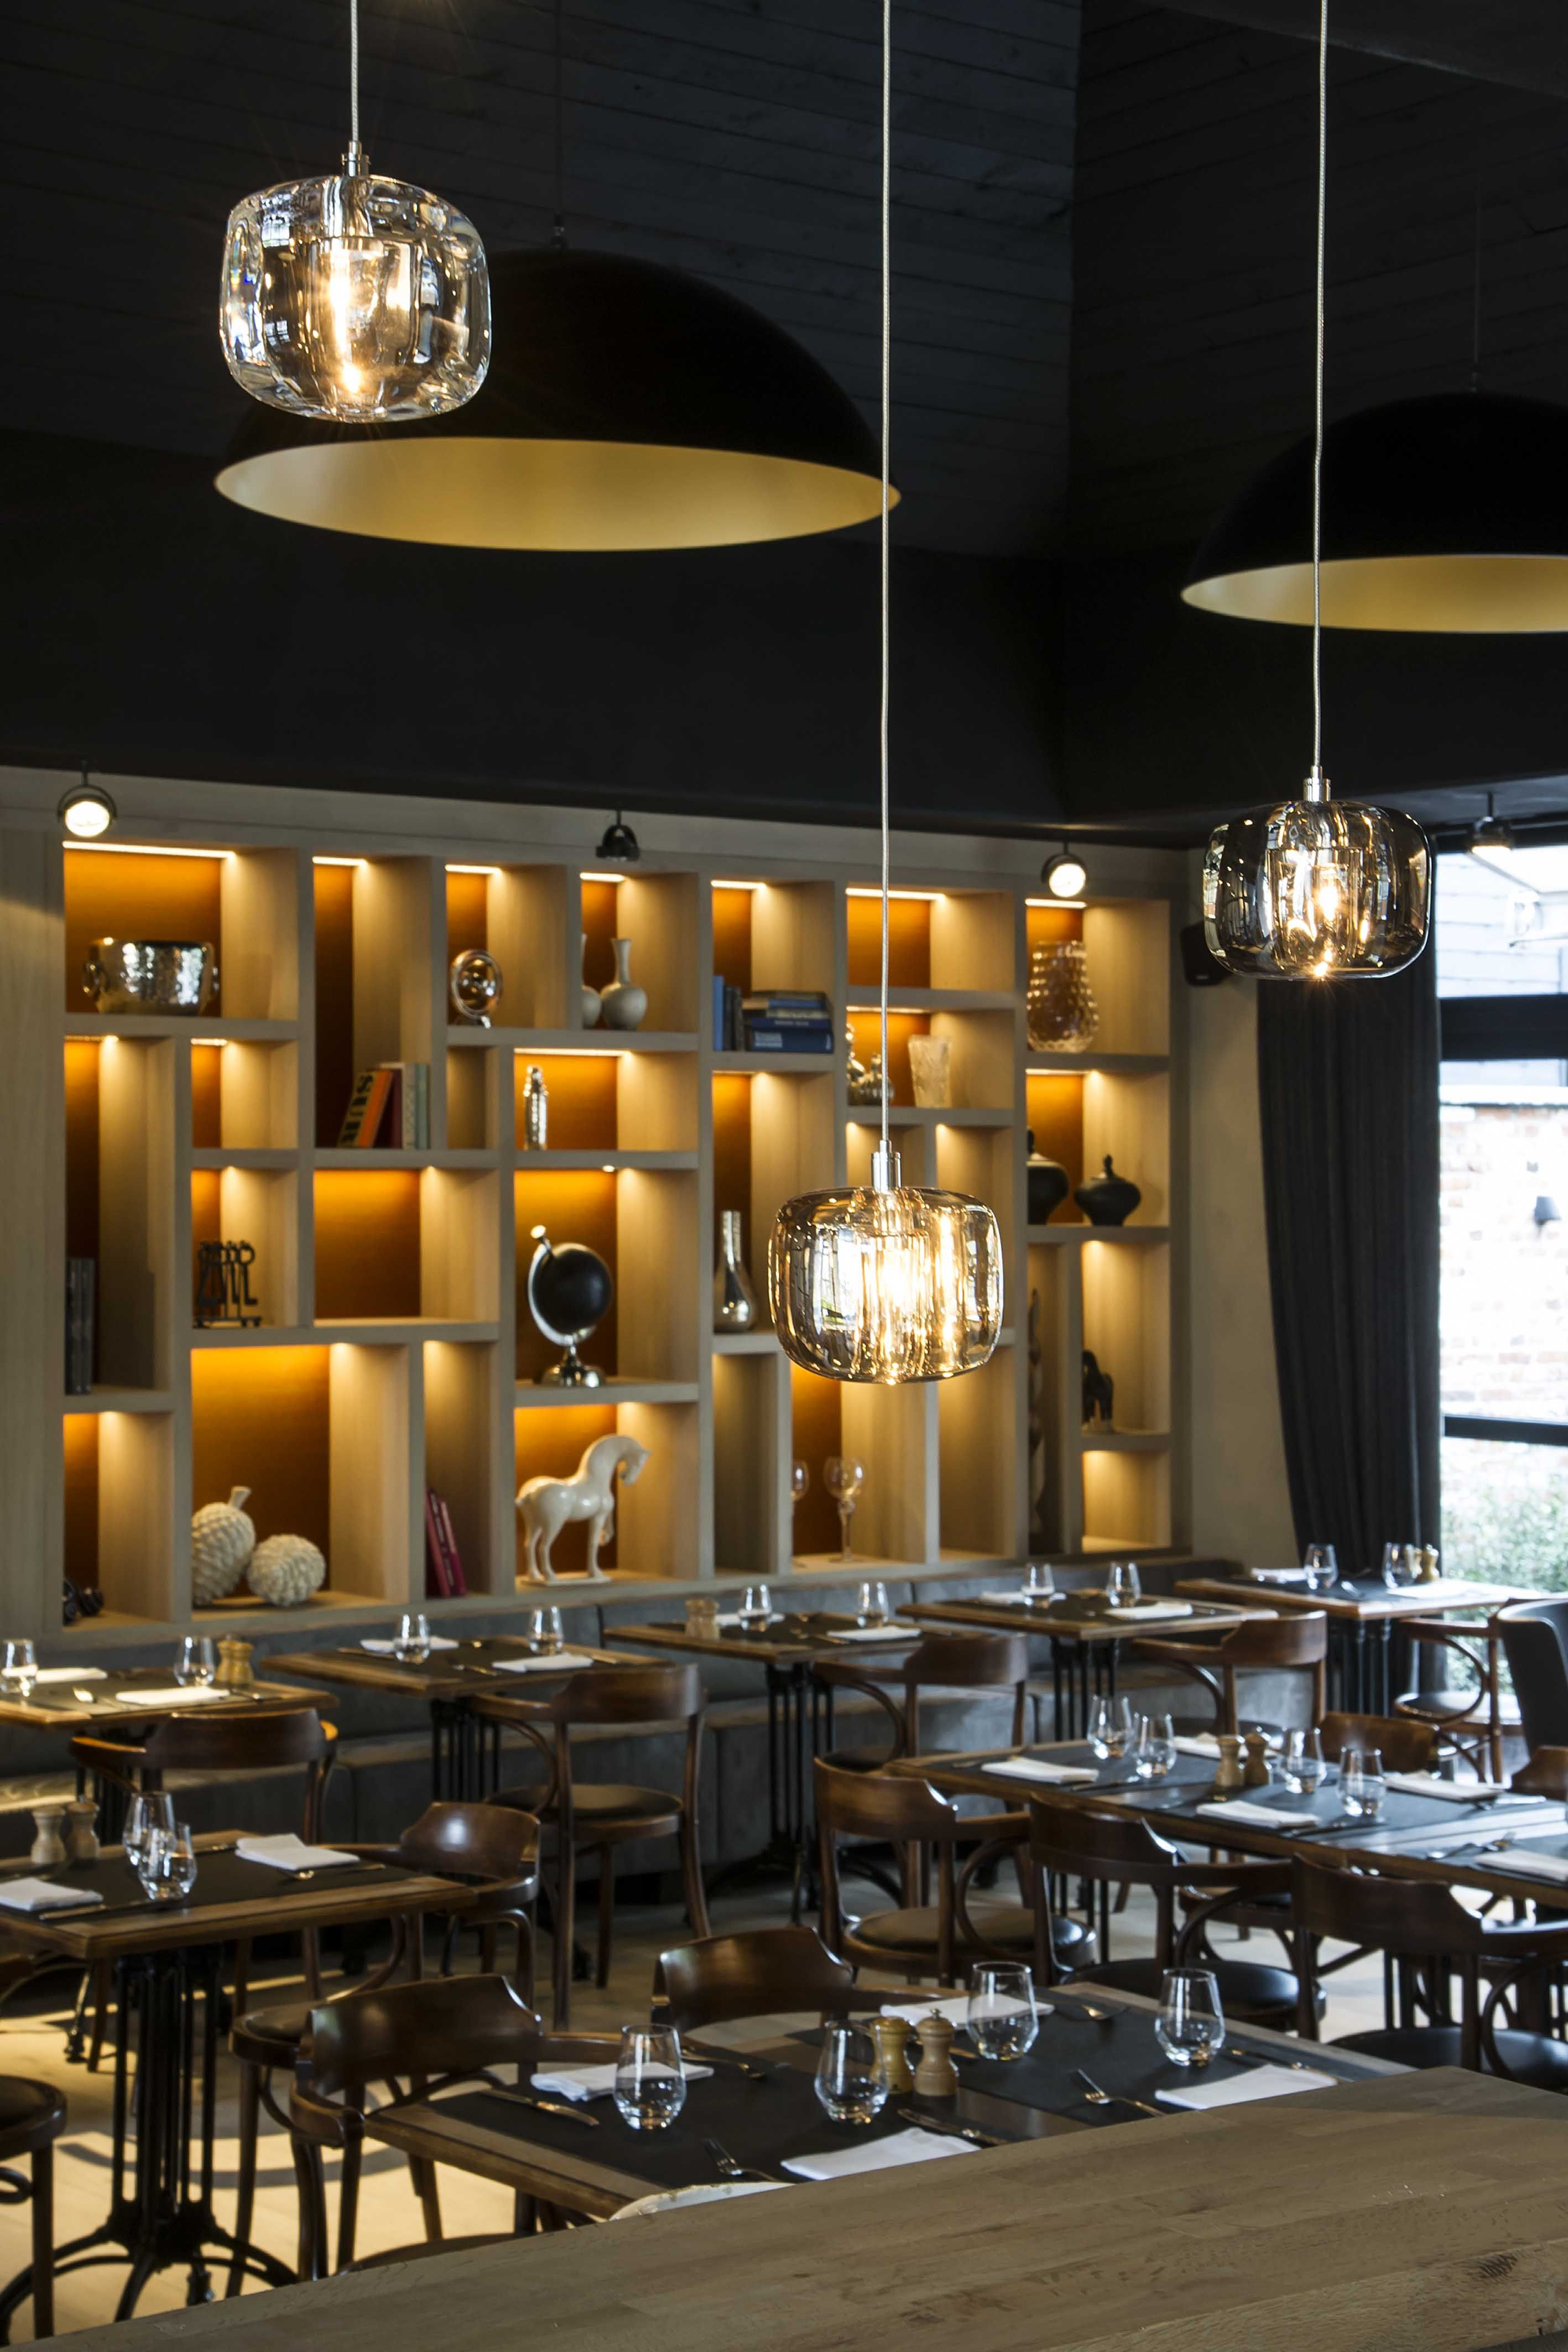 T Klooster De Pinte Wille H Interior Design #Restaurant #Dark